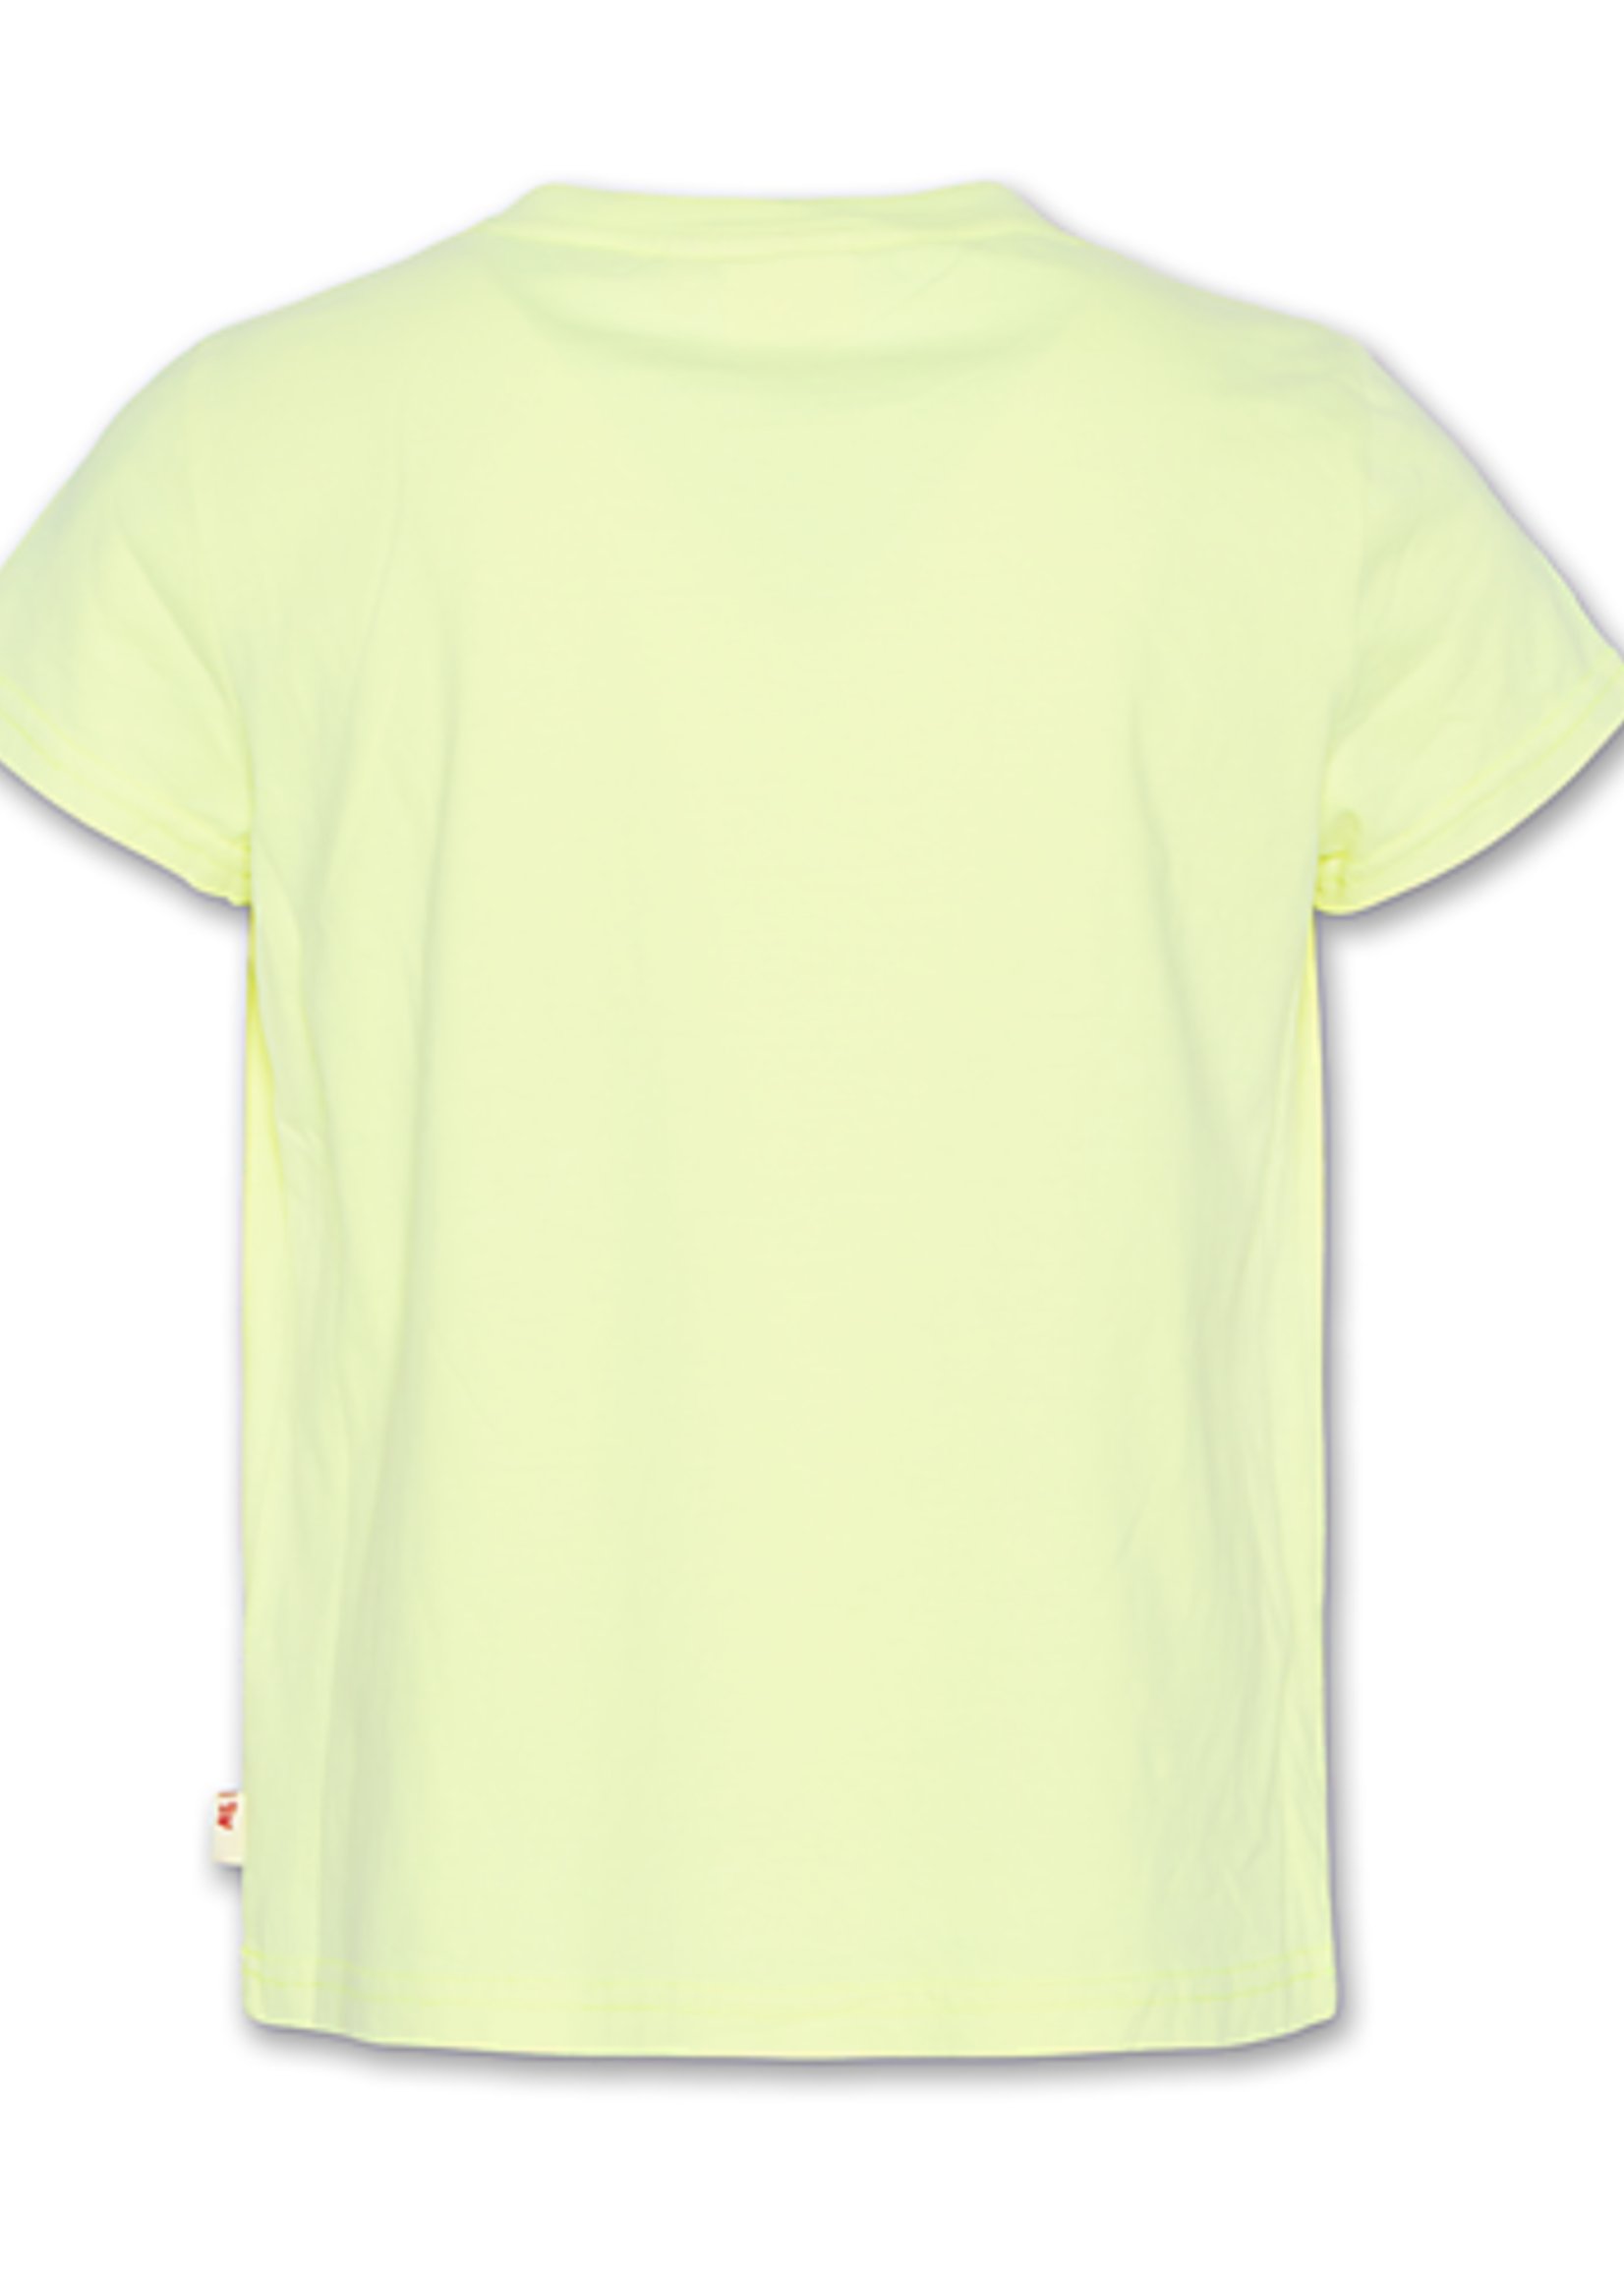 AMERICAN OUTFITTERS AO76 t-shirt fluo pineapple